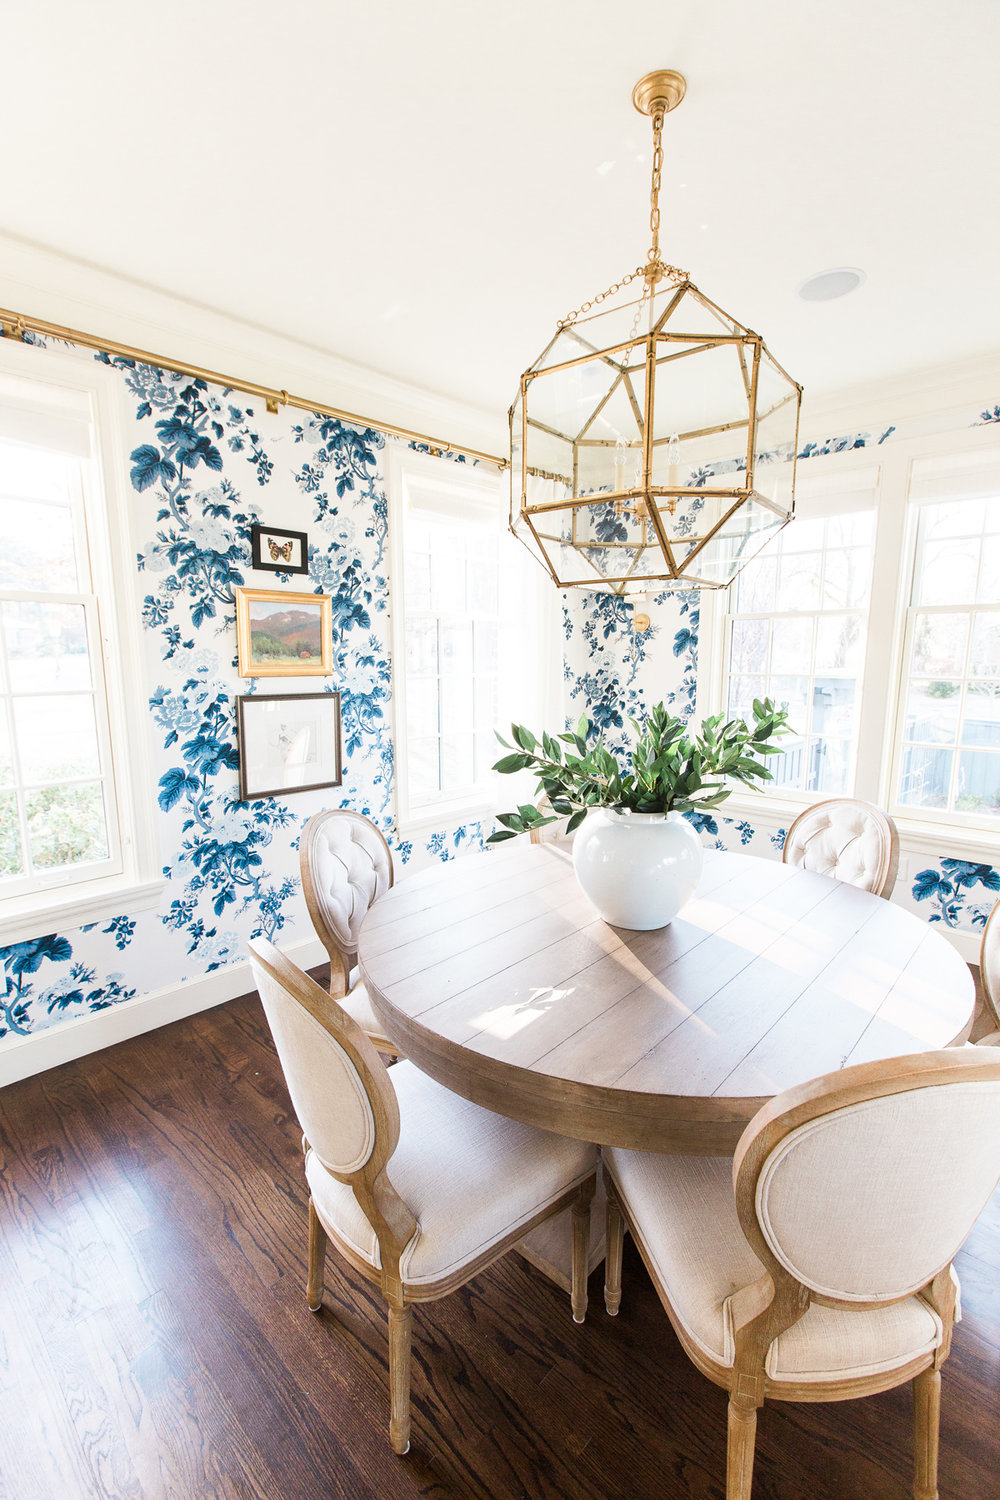 Green Street Dining Rooms Turned Into Home Offices: Green Street